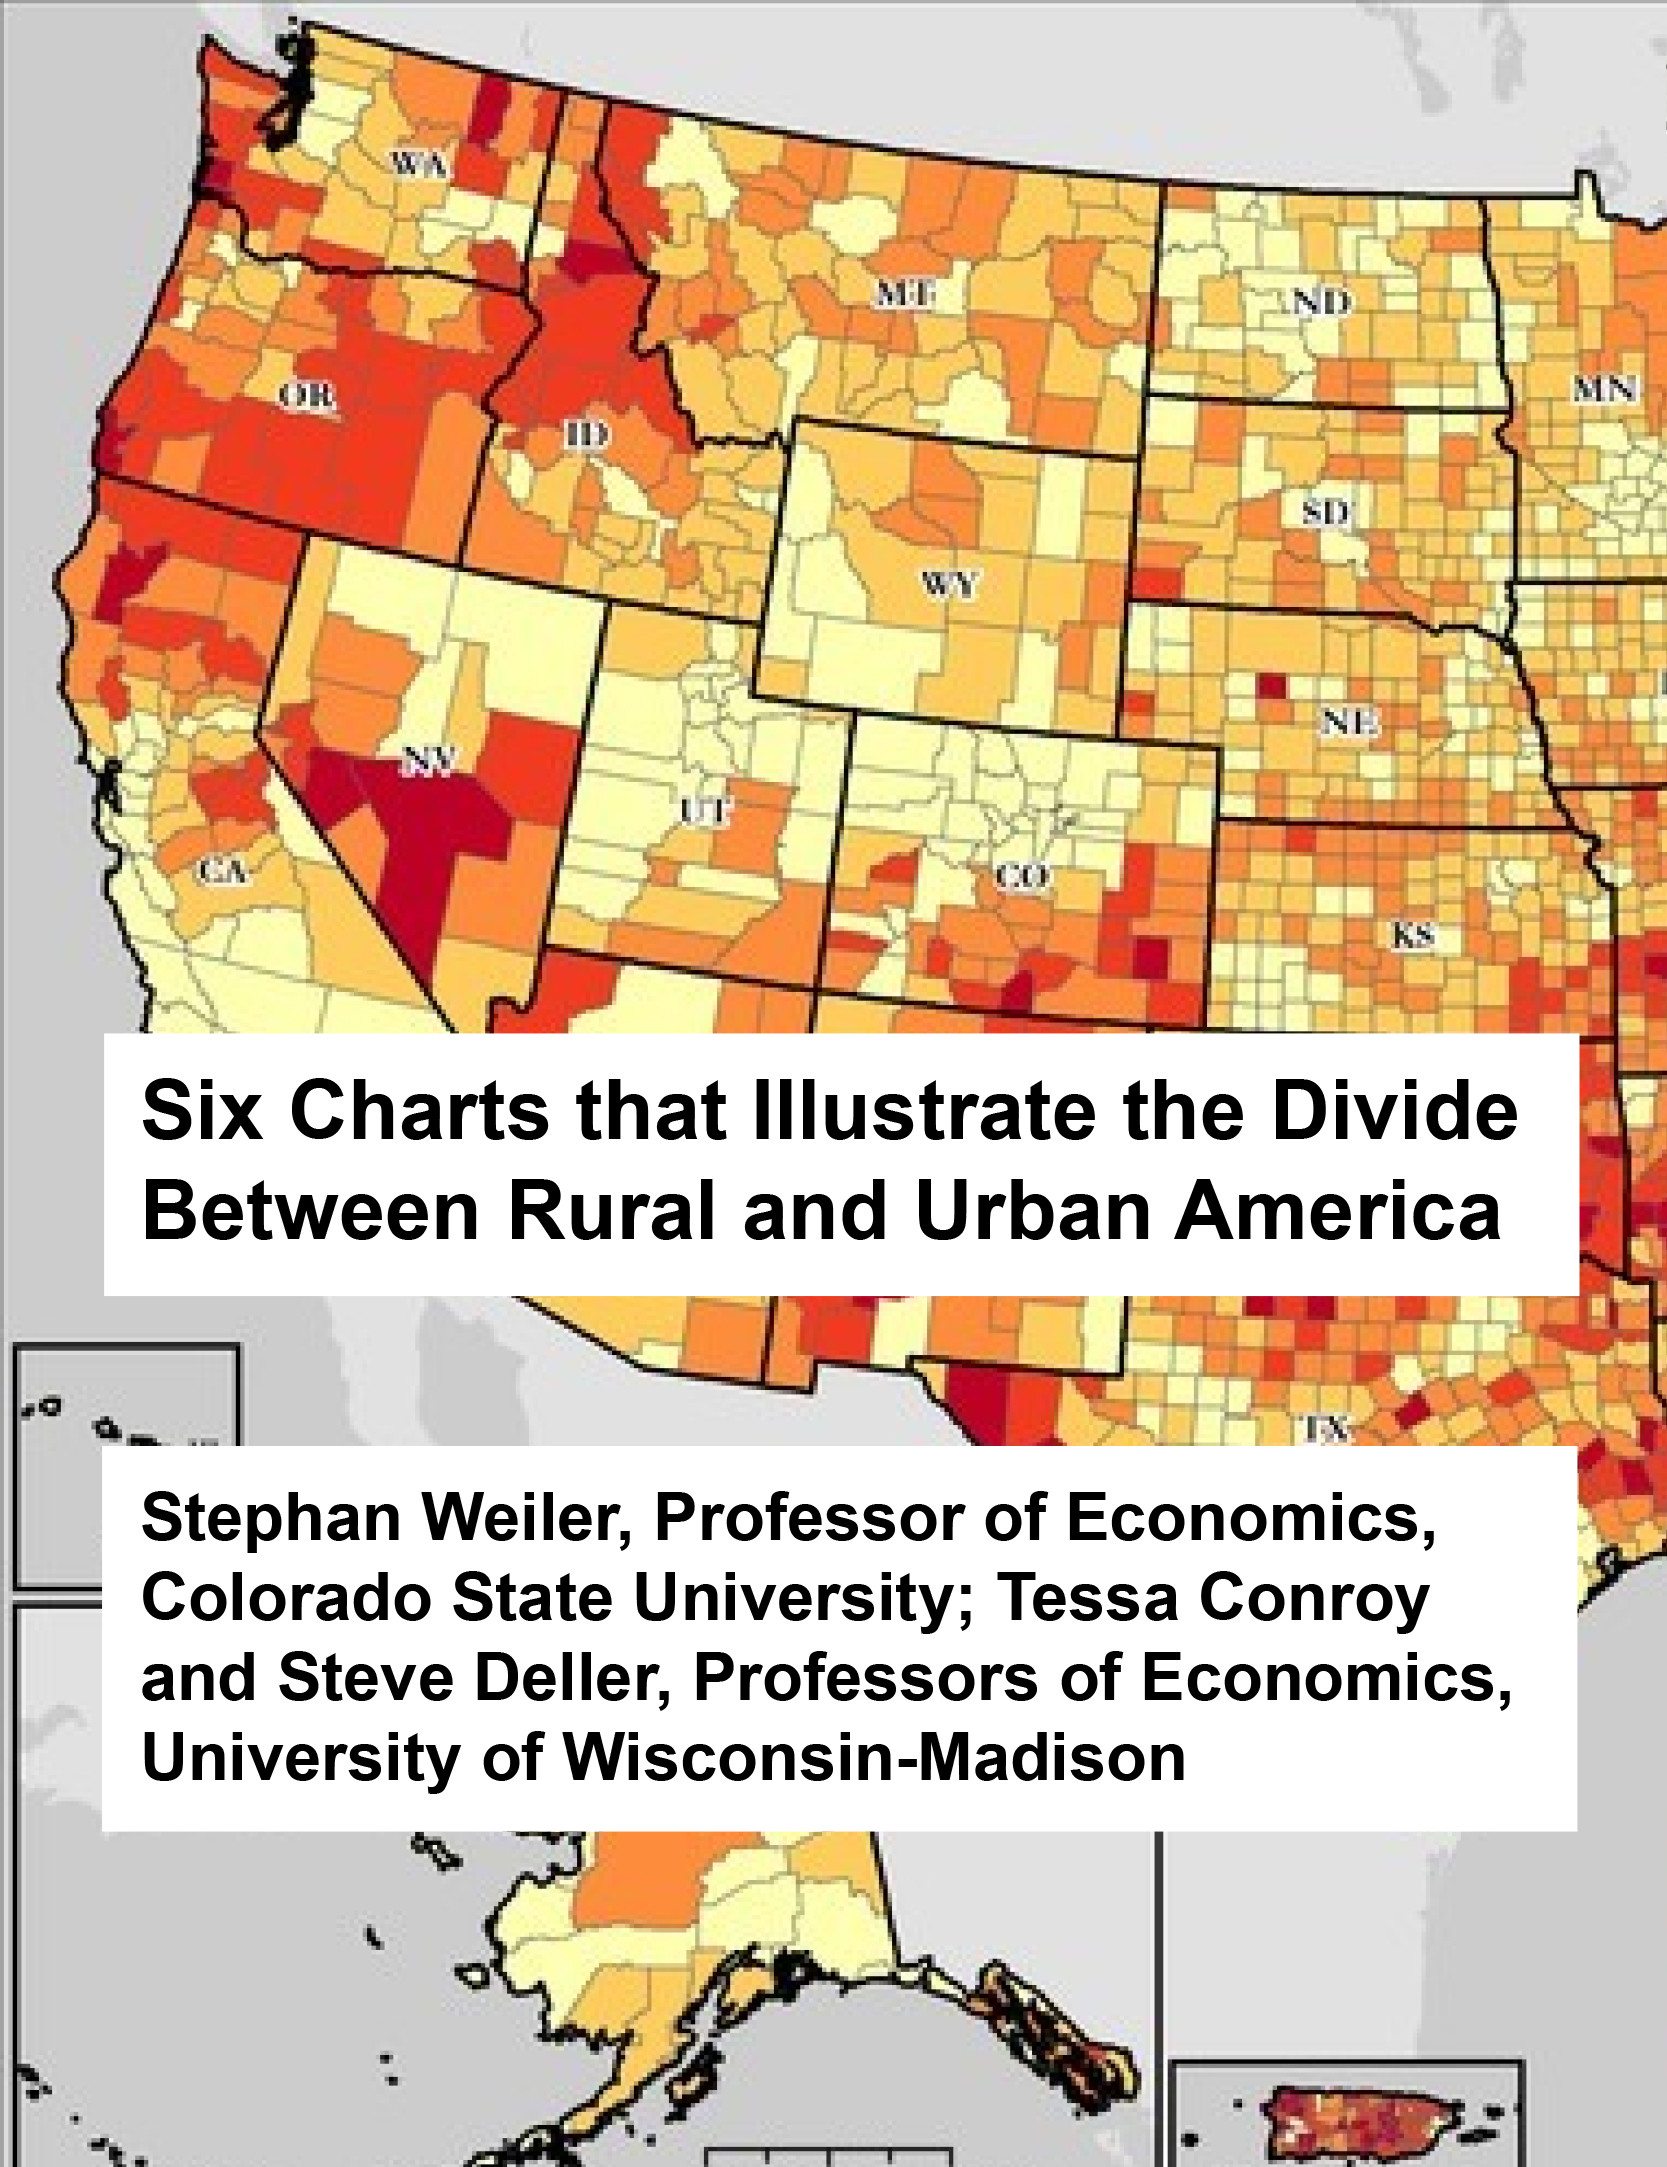 Six Charts that Illustrate the Divide Between Rural and Urban America